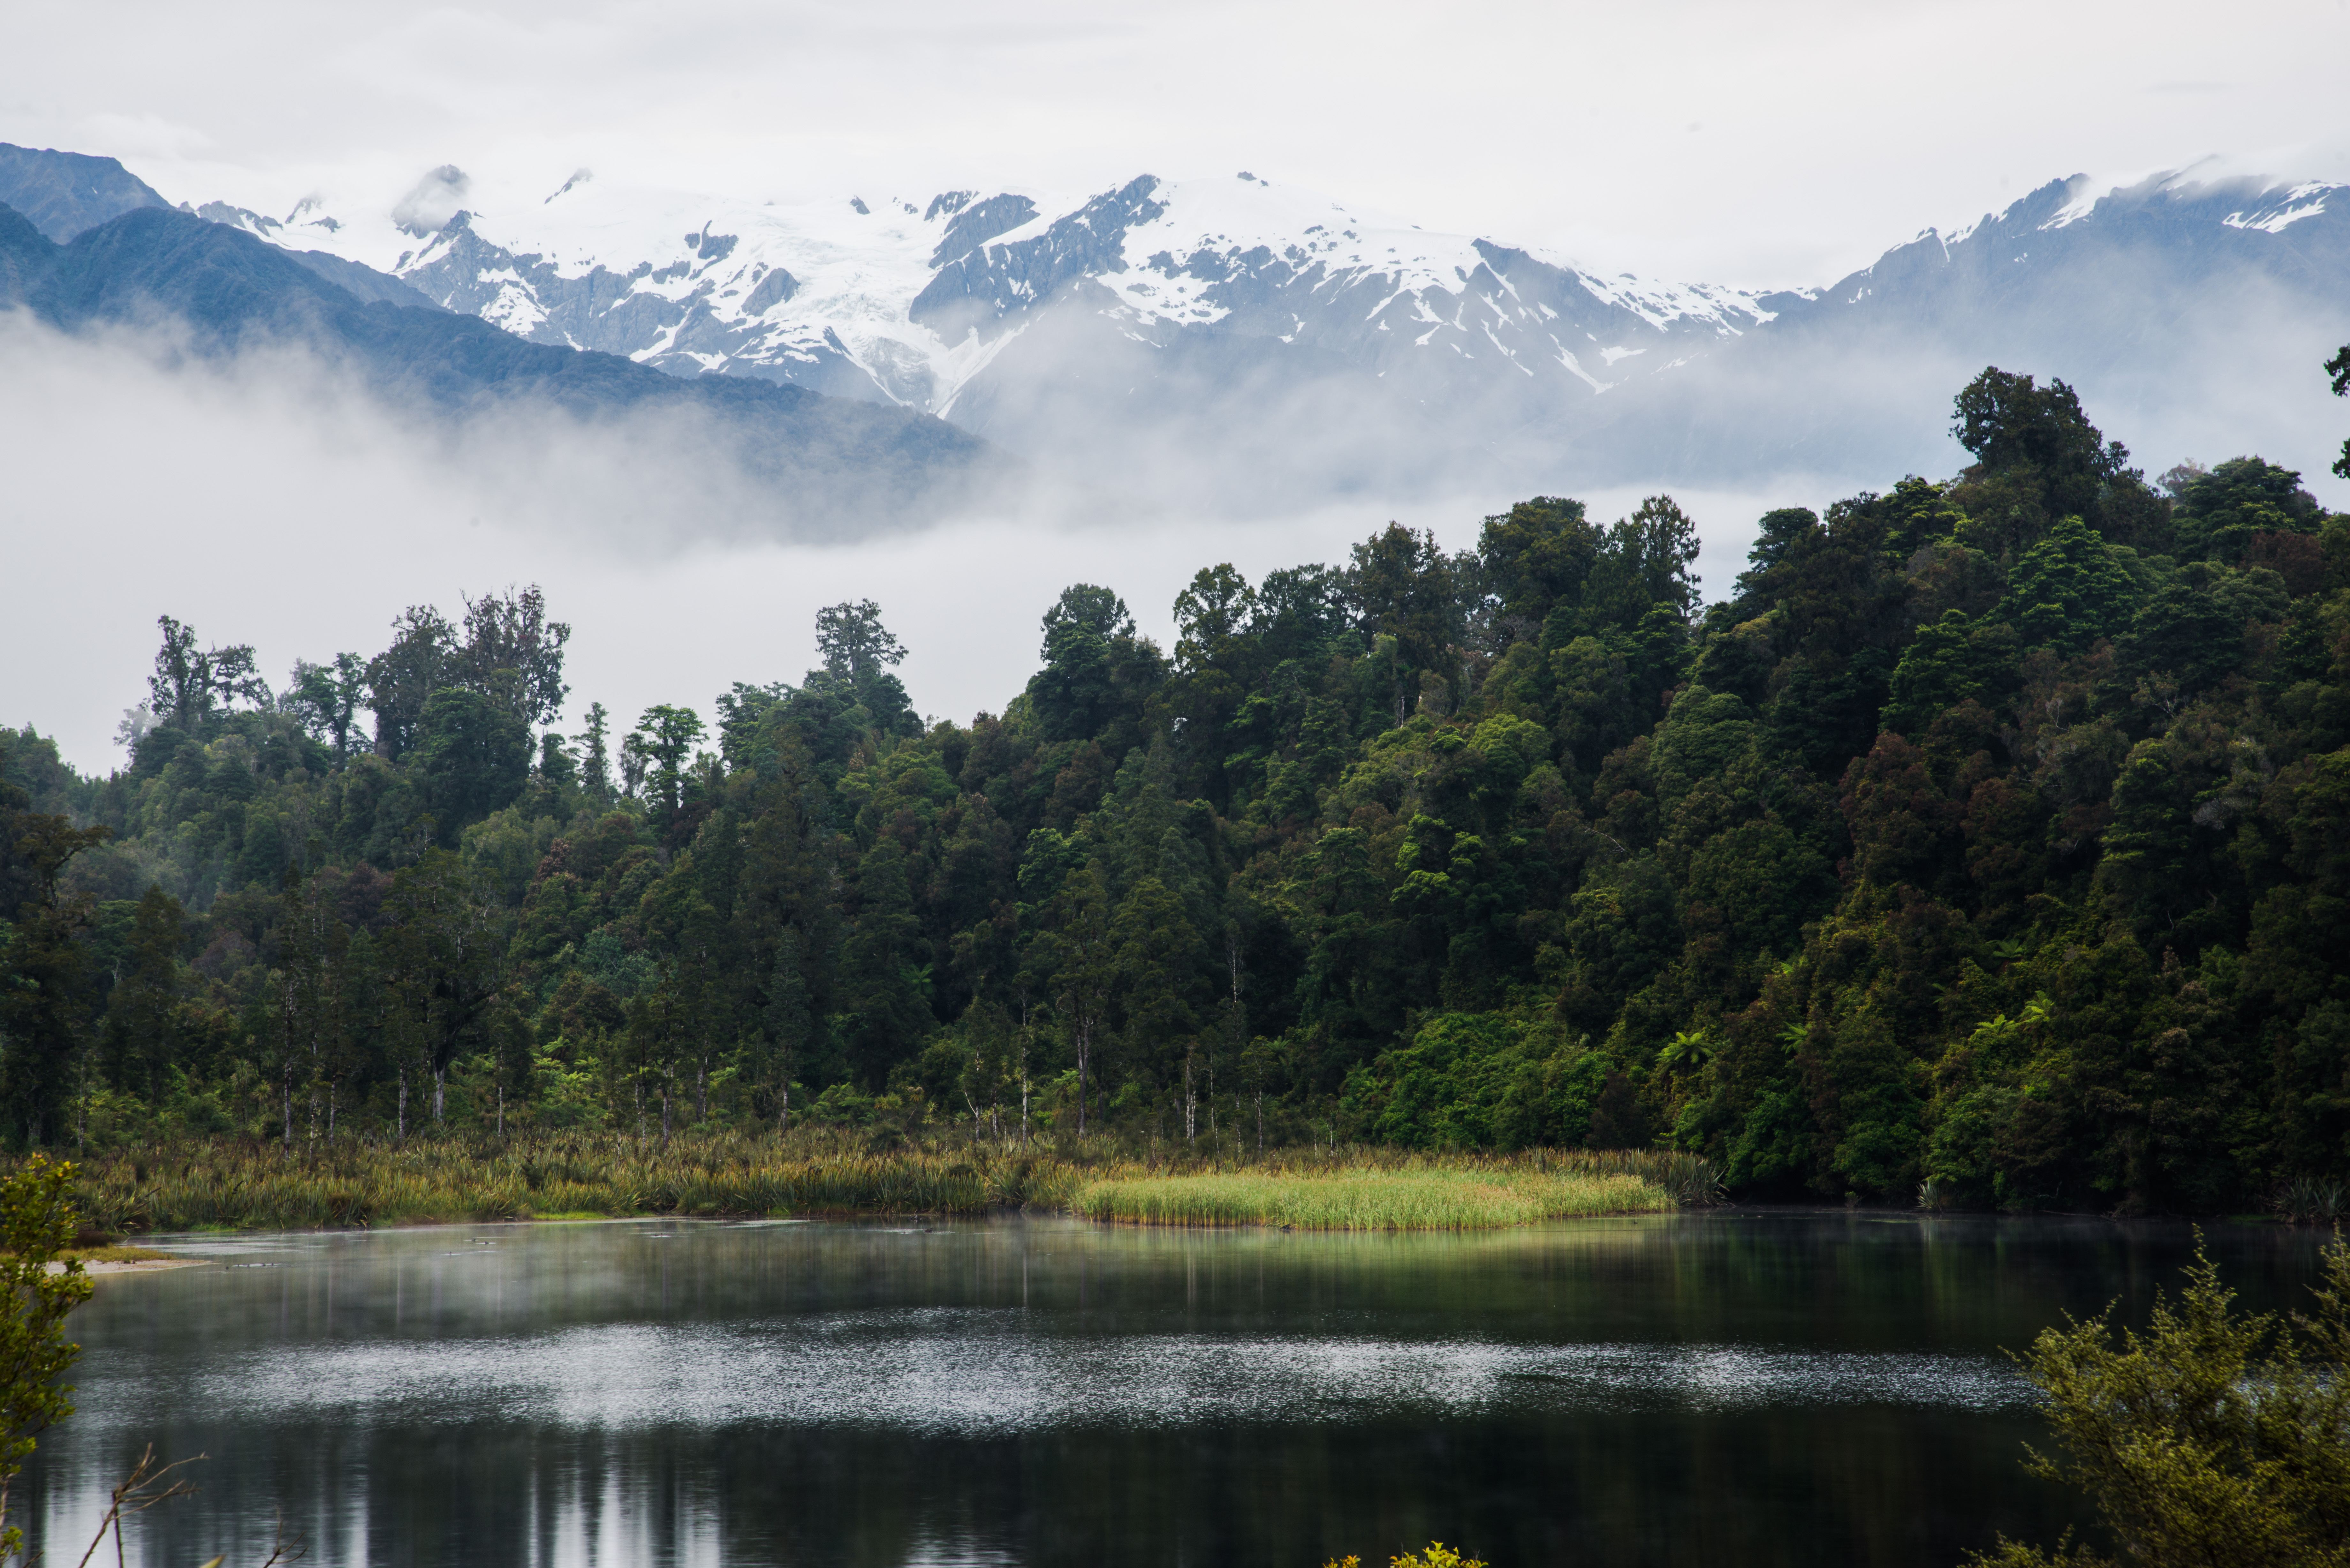 Fog on Lake and Mountains, New Zealand